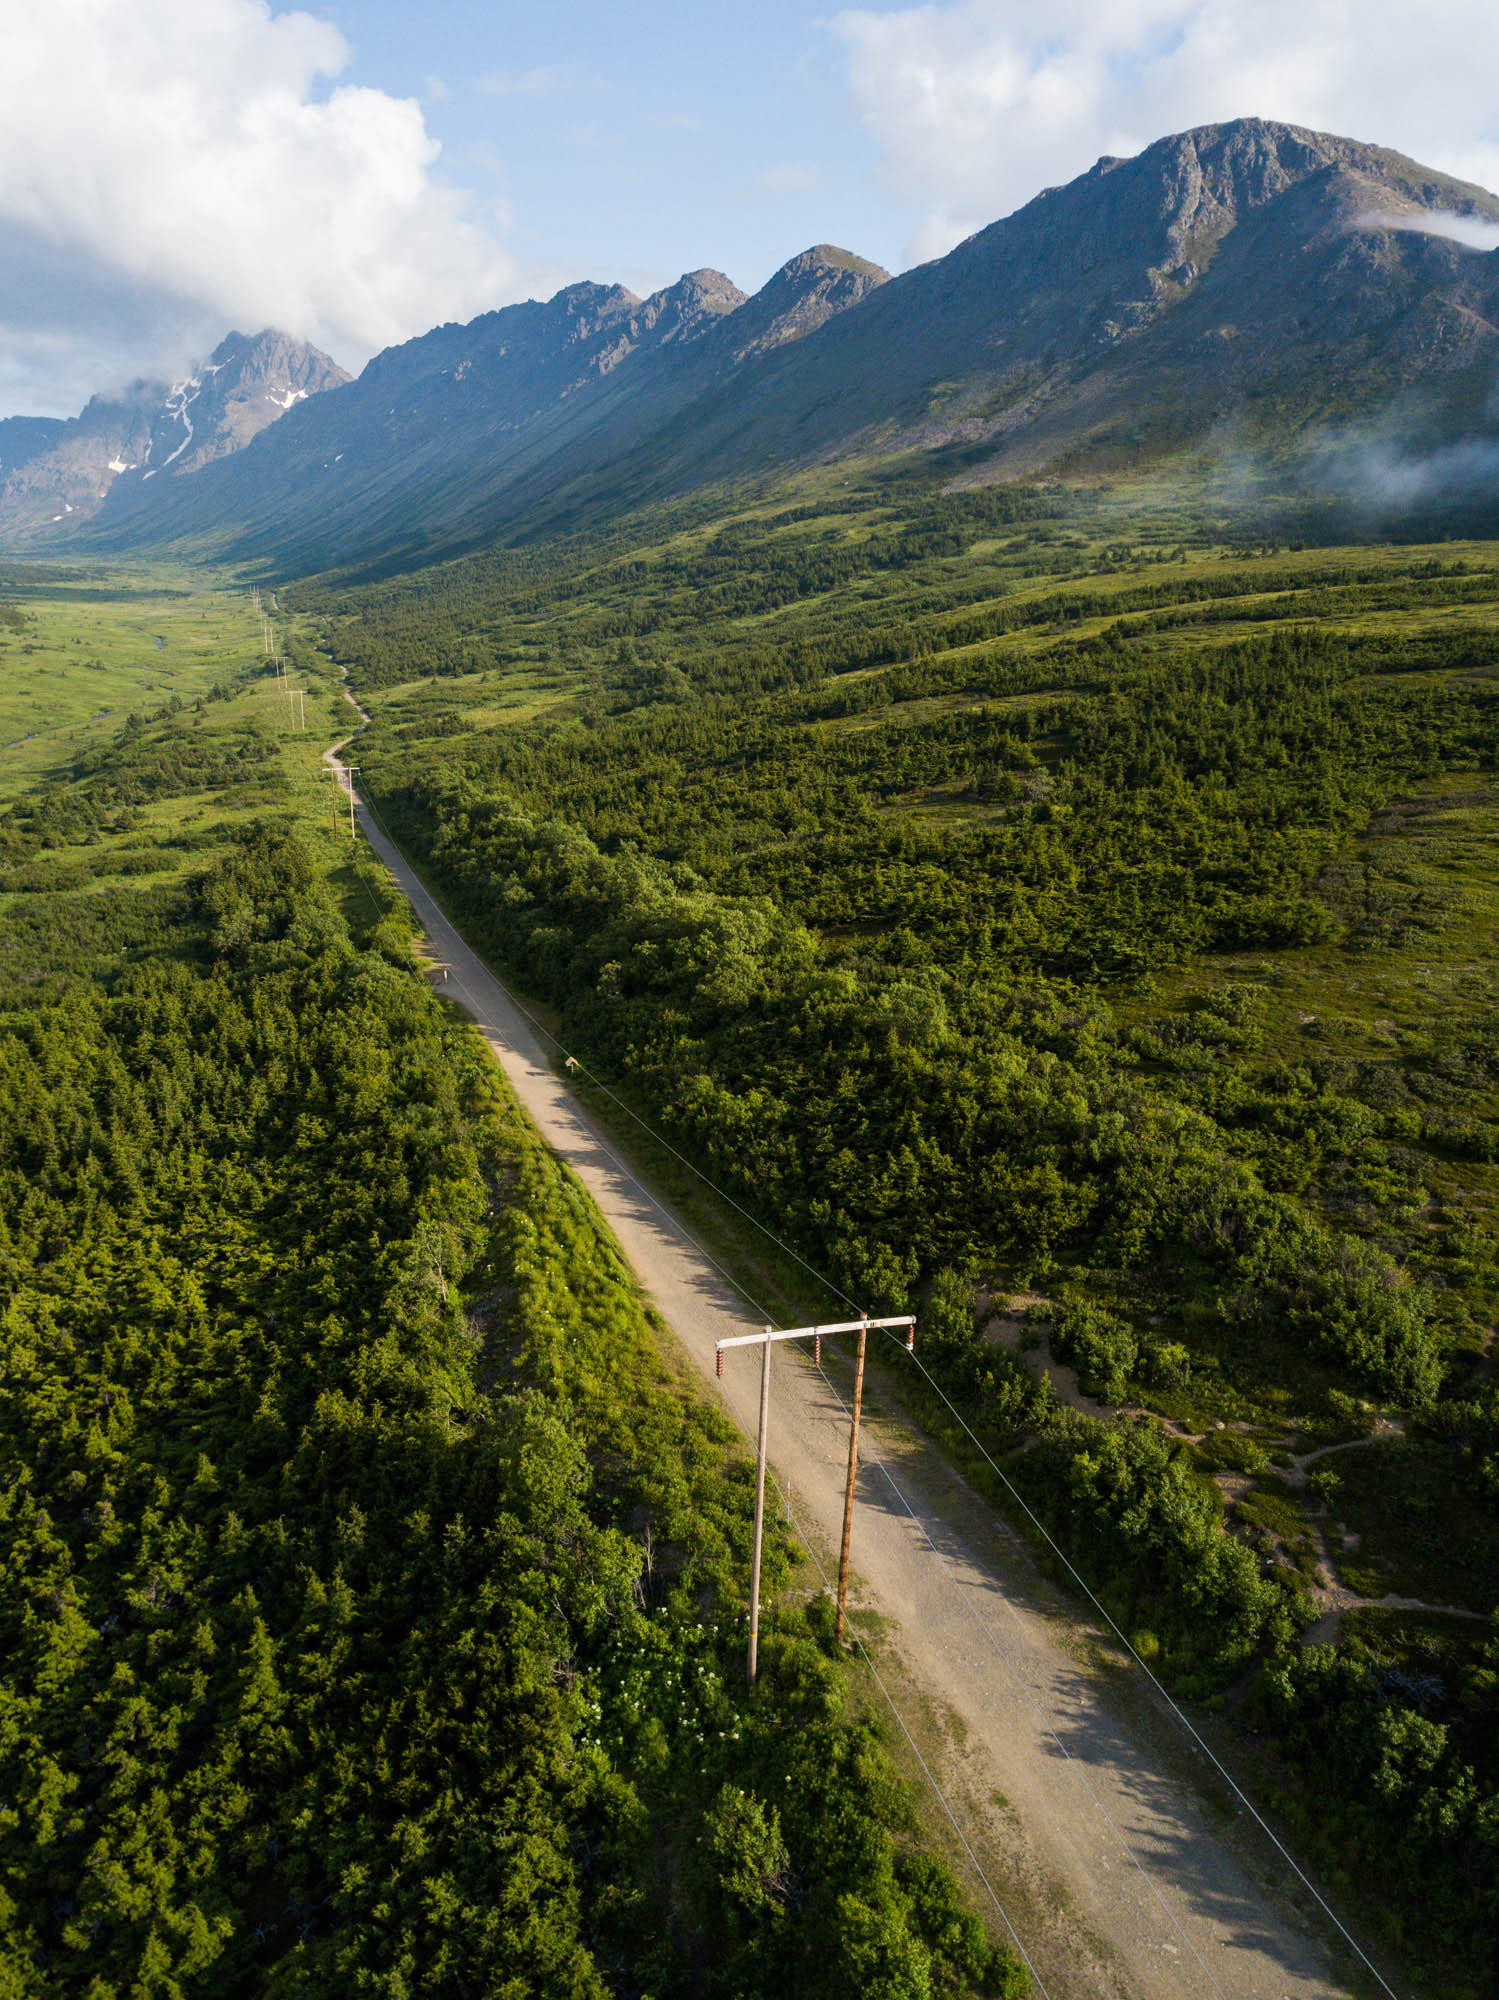 The powerline pass trail is seen from above as it cuts through a forested mountain valley near Anchorage, Alaska. It is a bright partly cloudy summer day. Orientation is vertical.